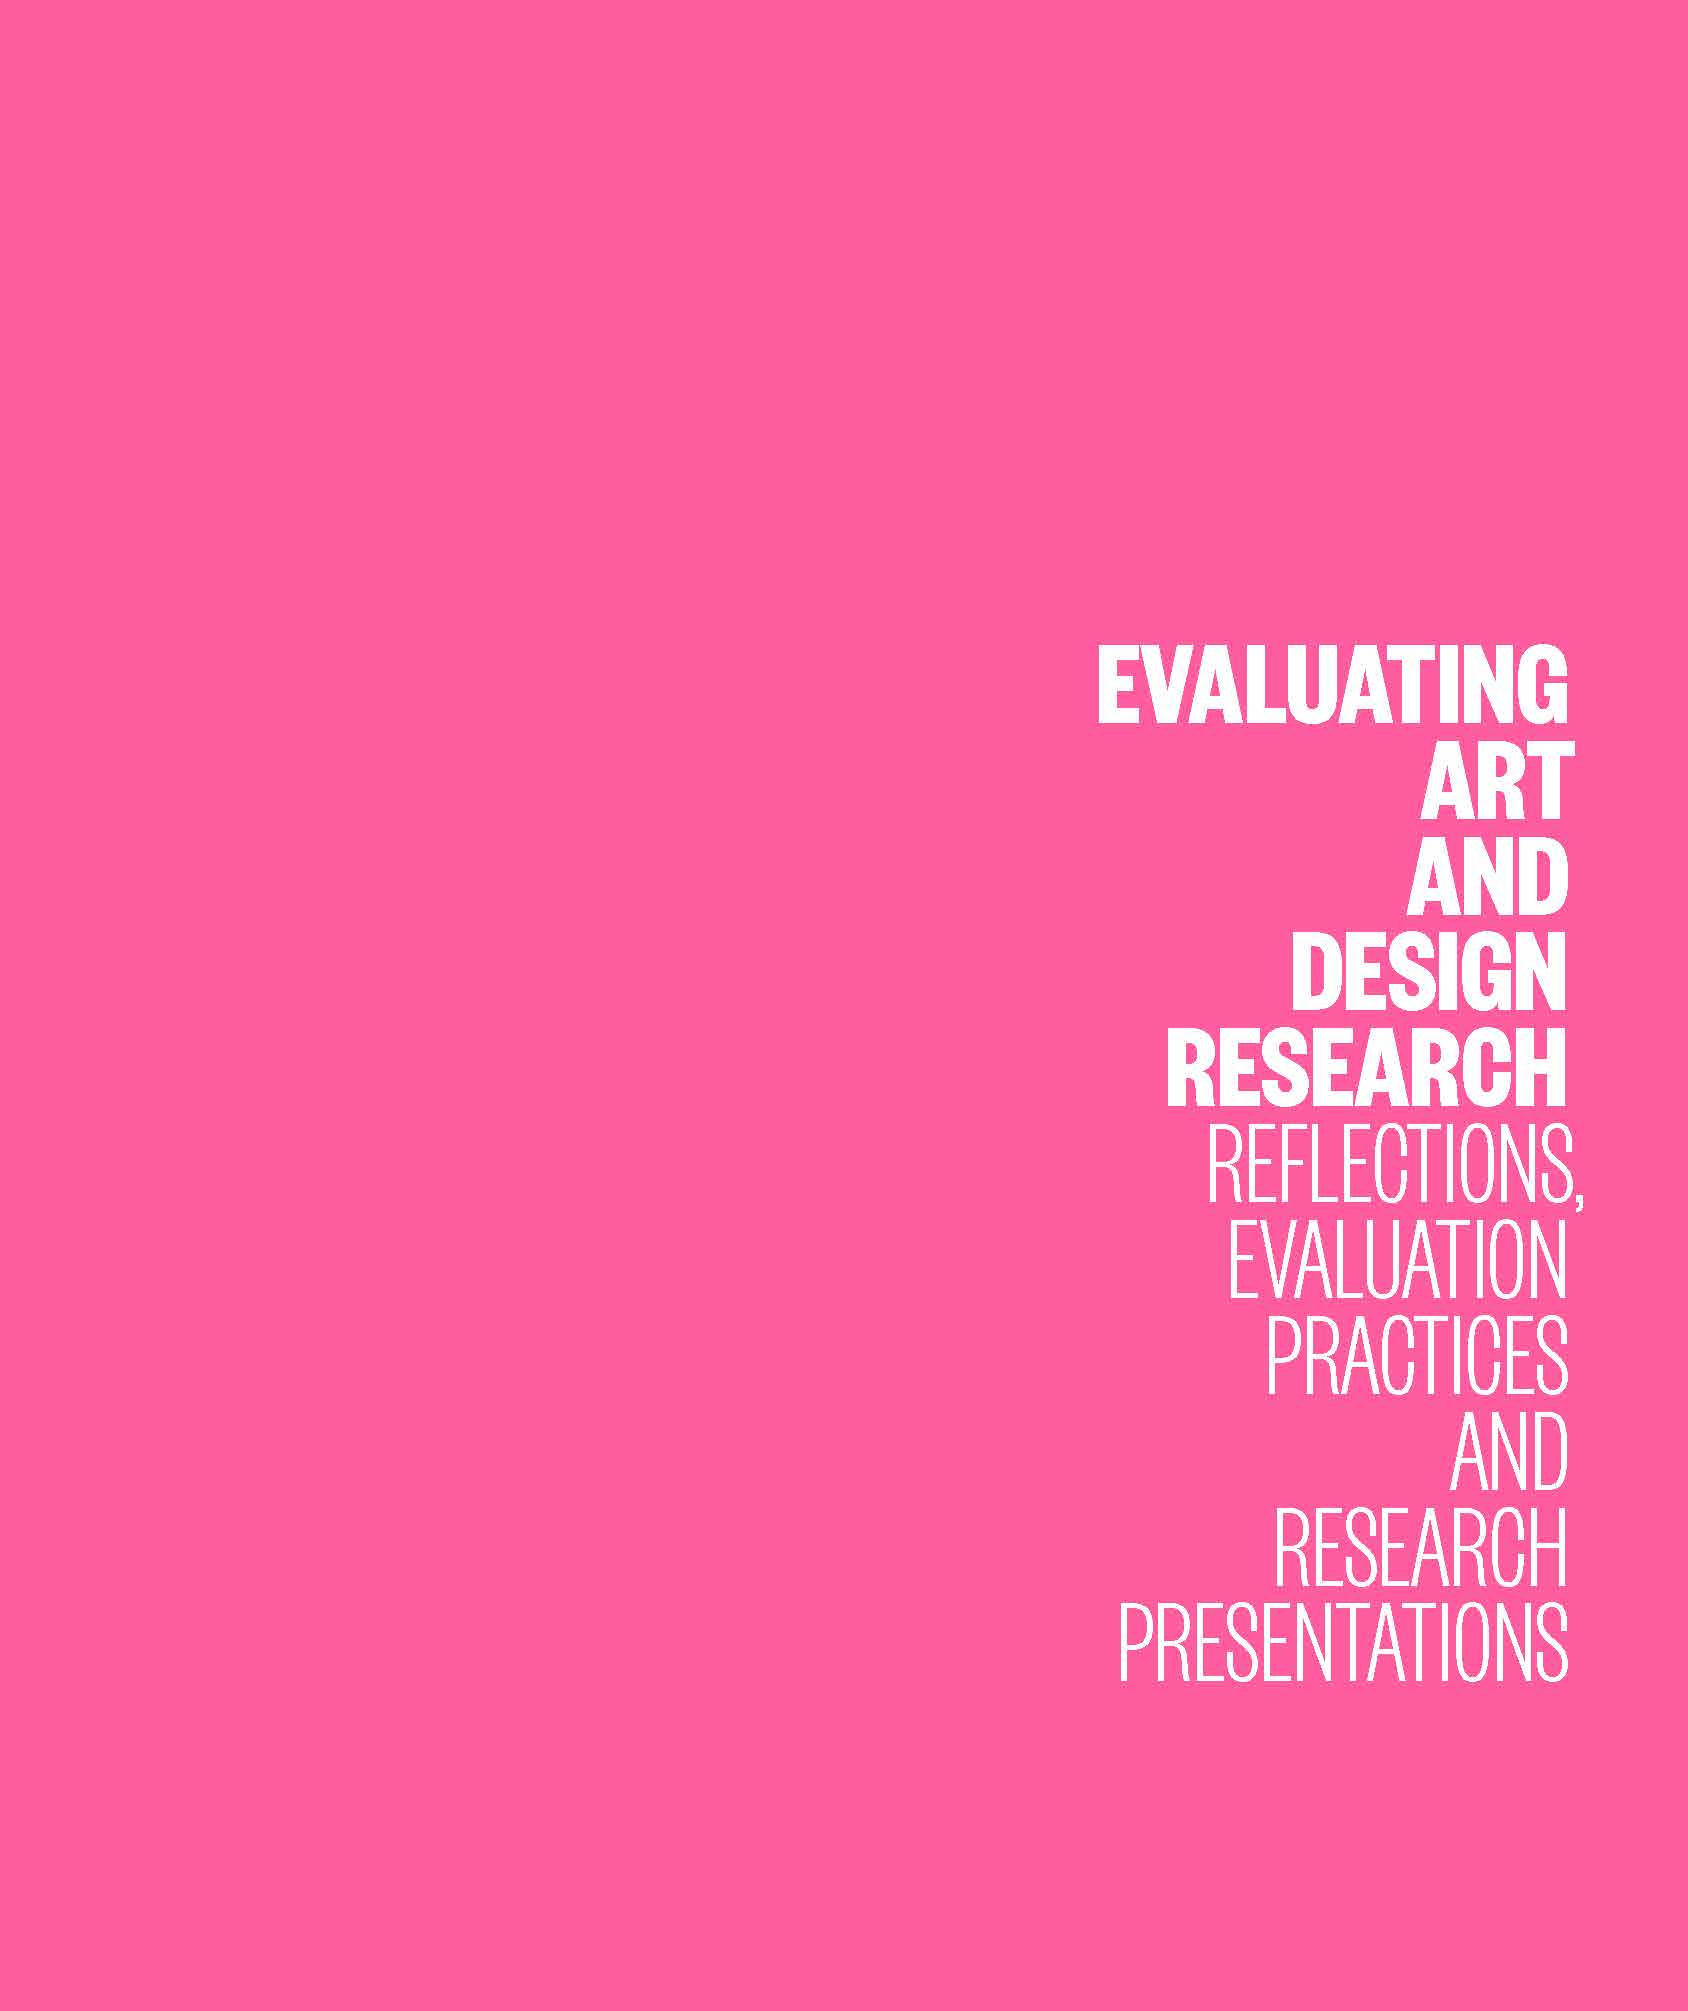 EVALUATING ART AND DESIGN RESEARCH